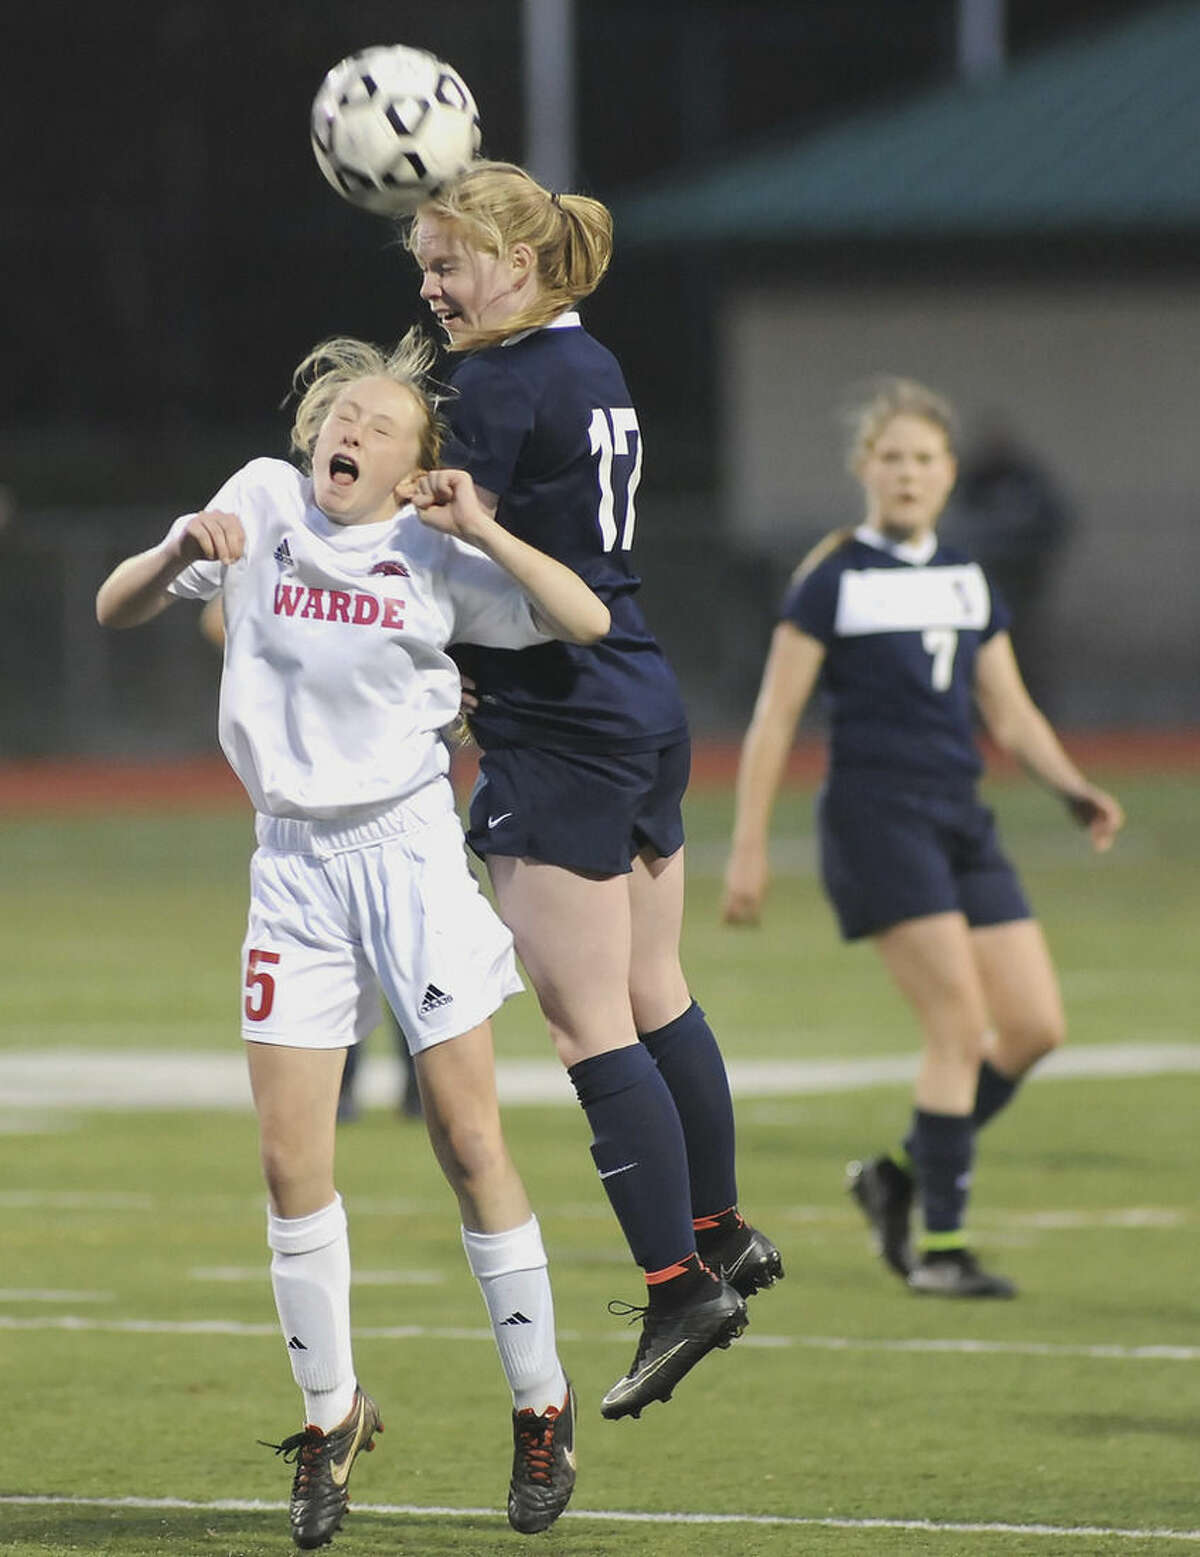 Hour photo/John Nash Wilton's Maggie Walsh (17) gets more air than Fairfield Warde's Lauren Tangney to win an air ball during Wednesday's FCIAC championship game in Norwalk. The two teams were declared co-champs after the game ended in a 1-1 tie.